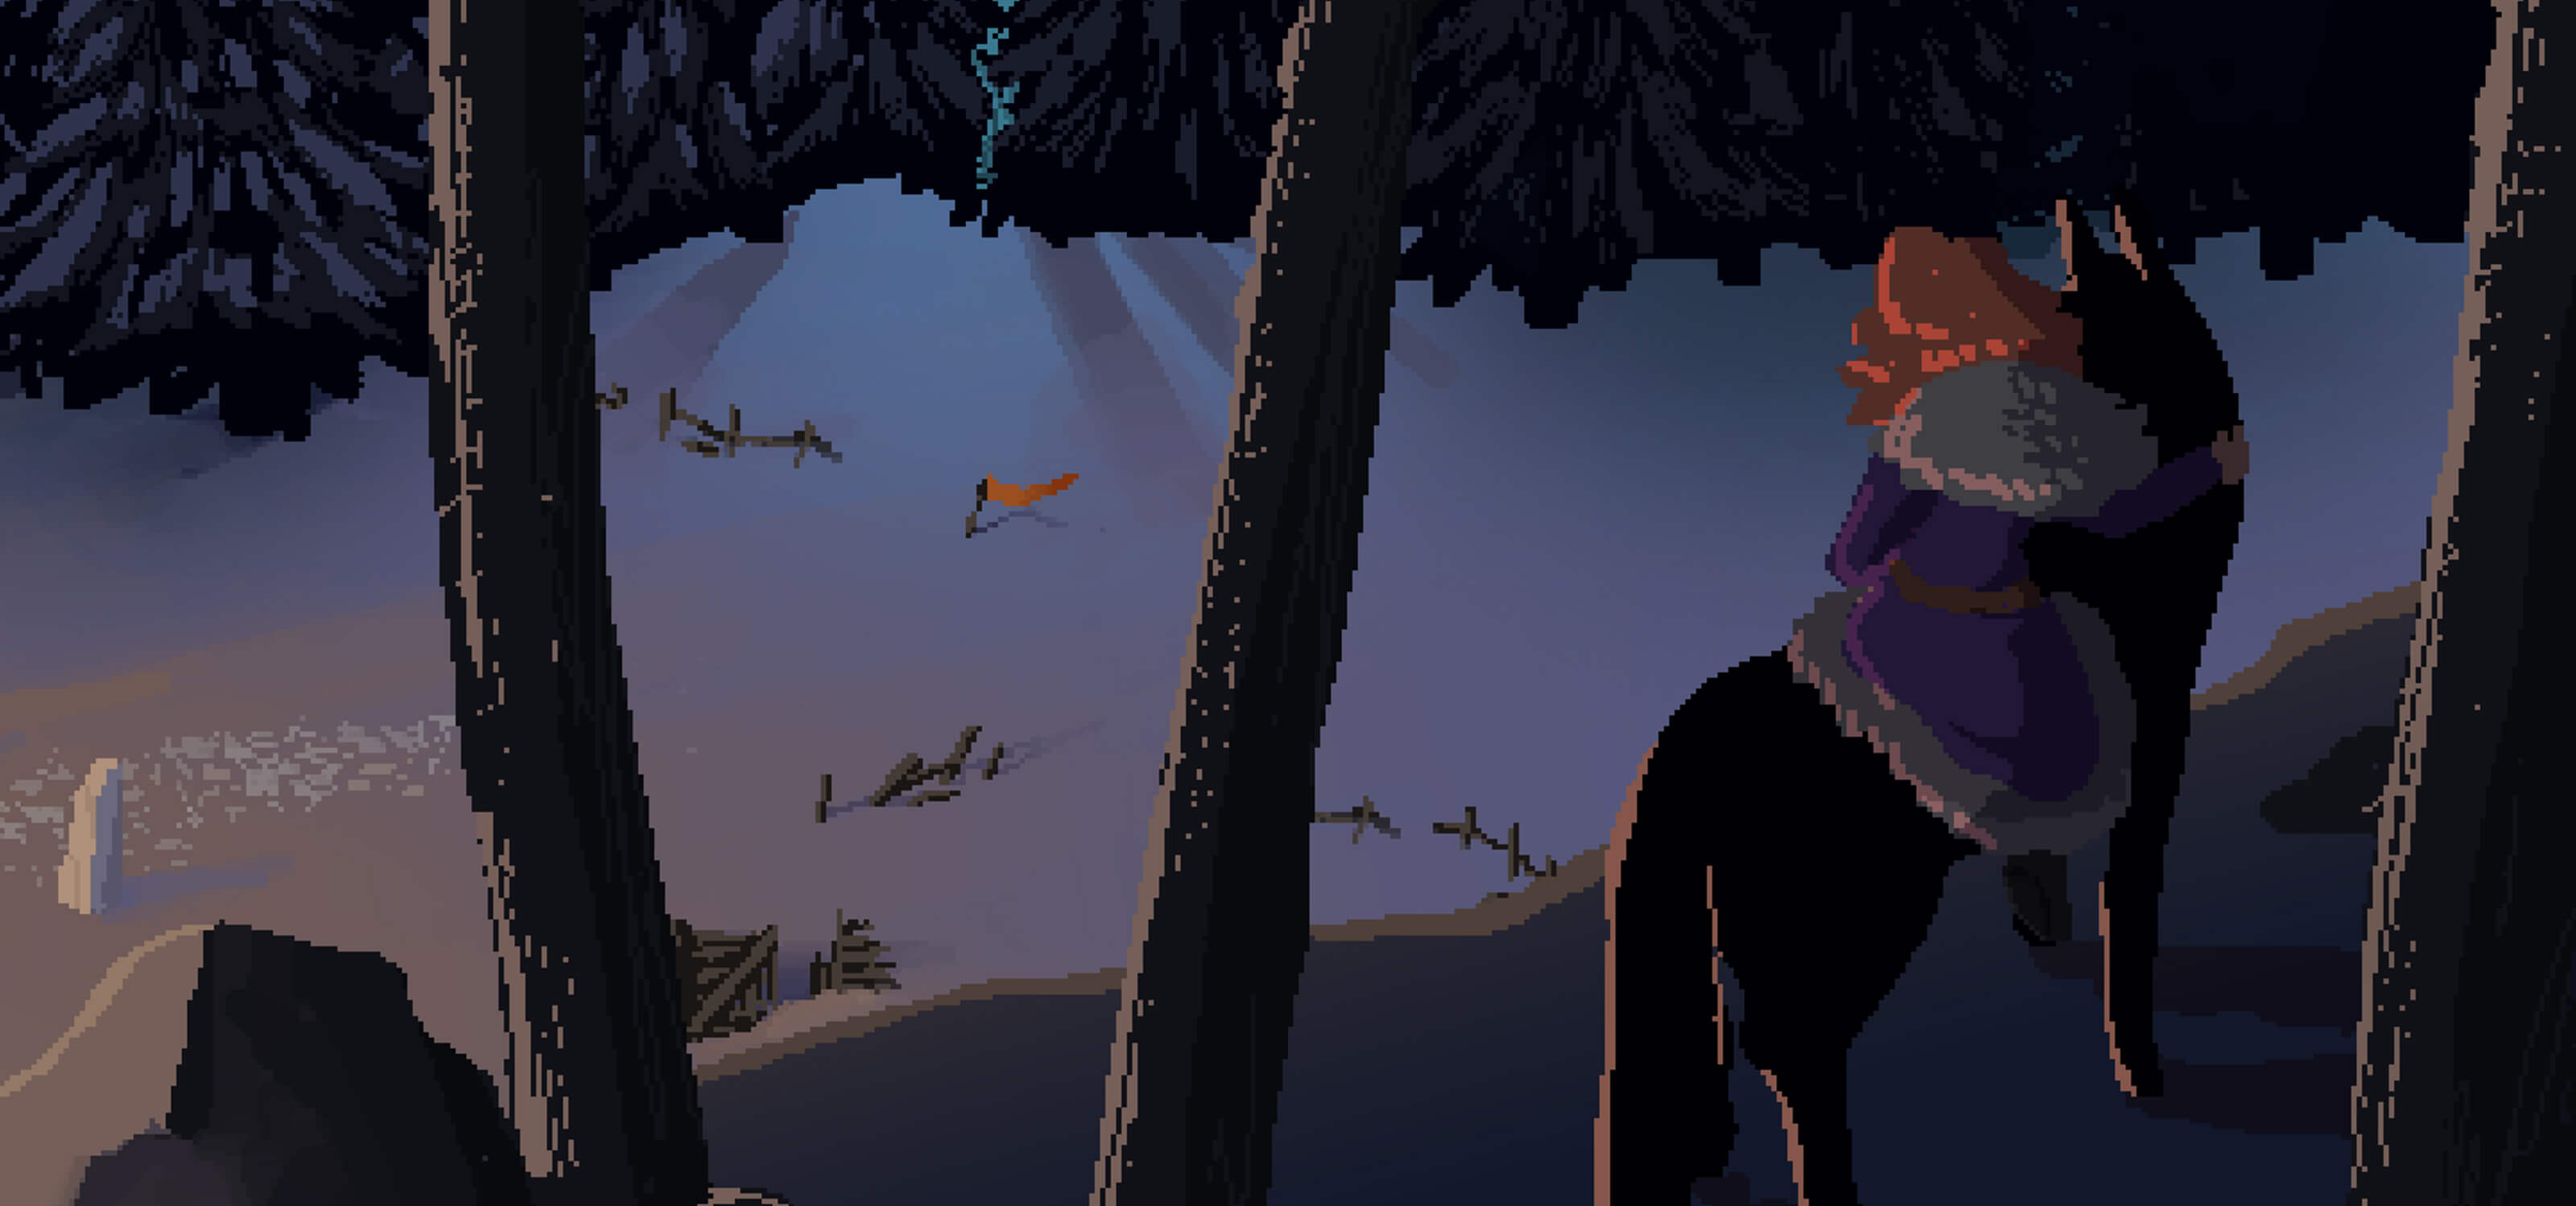 A screenshot from DigiPen student game The Blade in the Bark showing a girl on a wolf's back in the woods.